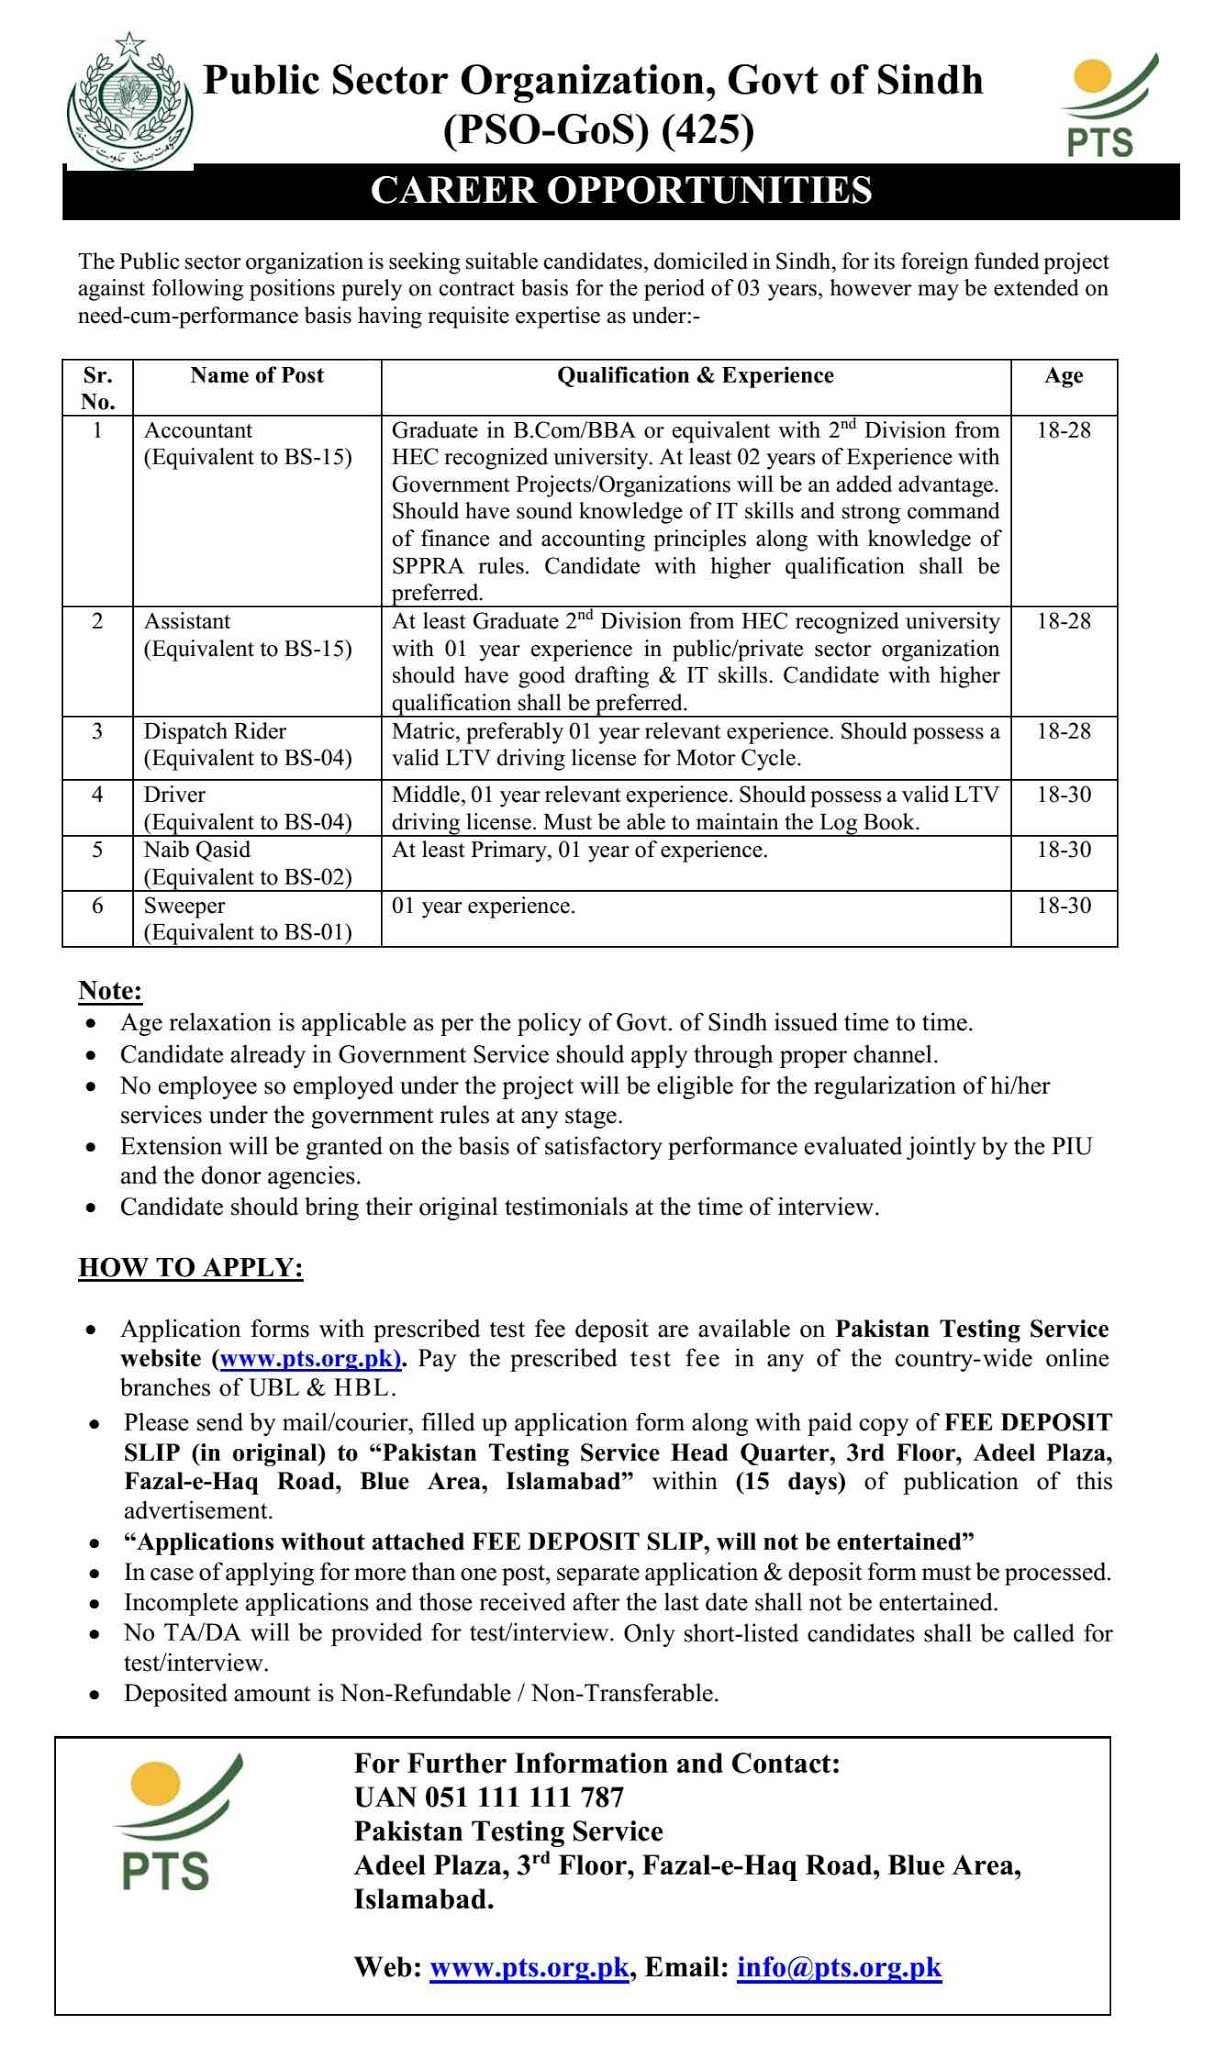 Public Sector Organization, Govt of Sindh (PSO-Sindh) Jobs 2020 | by PTS